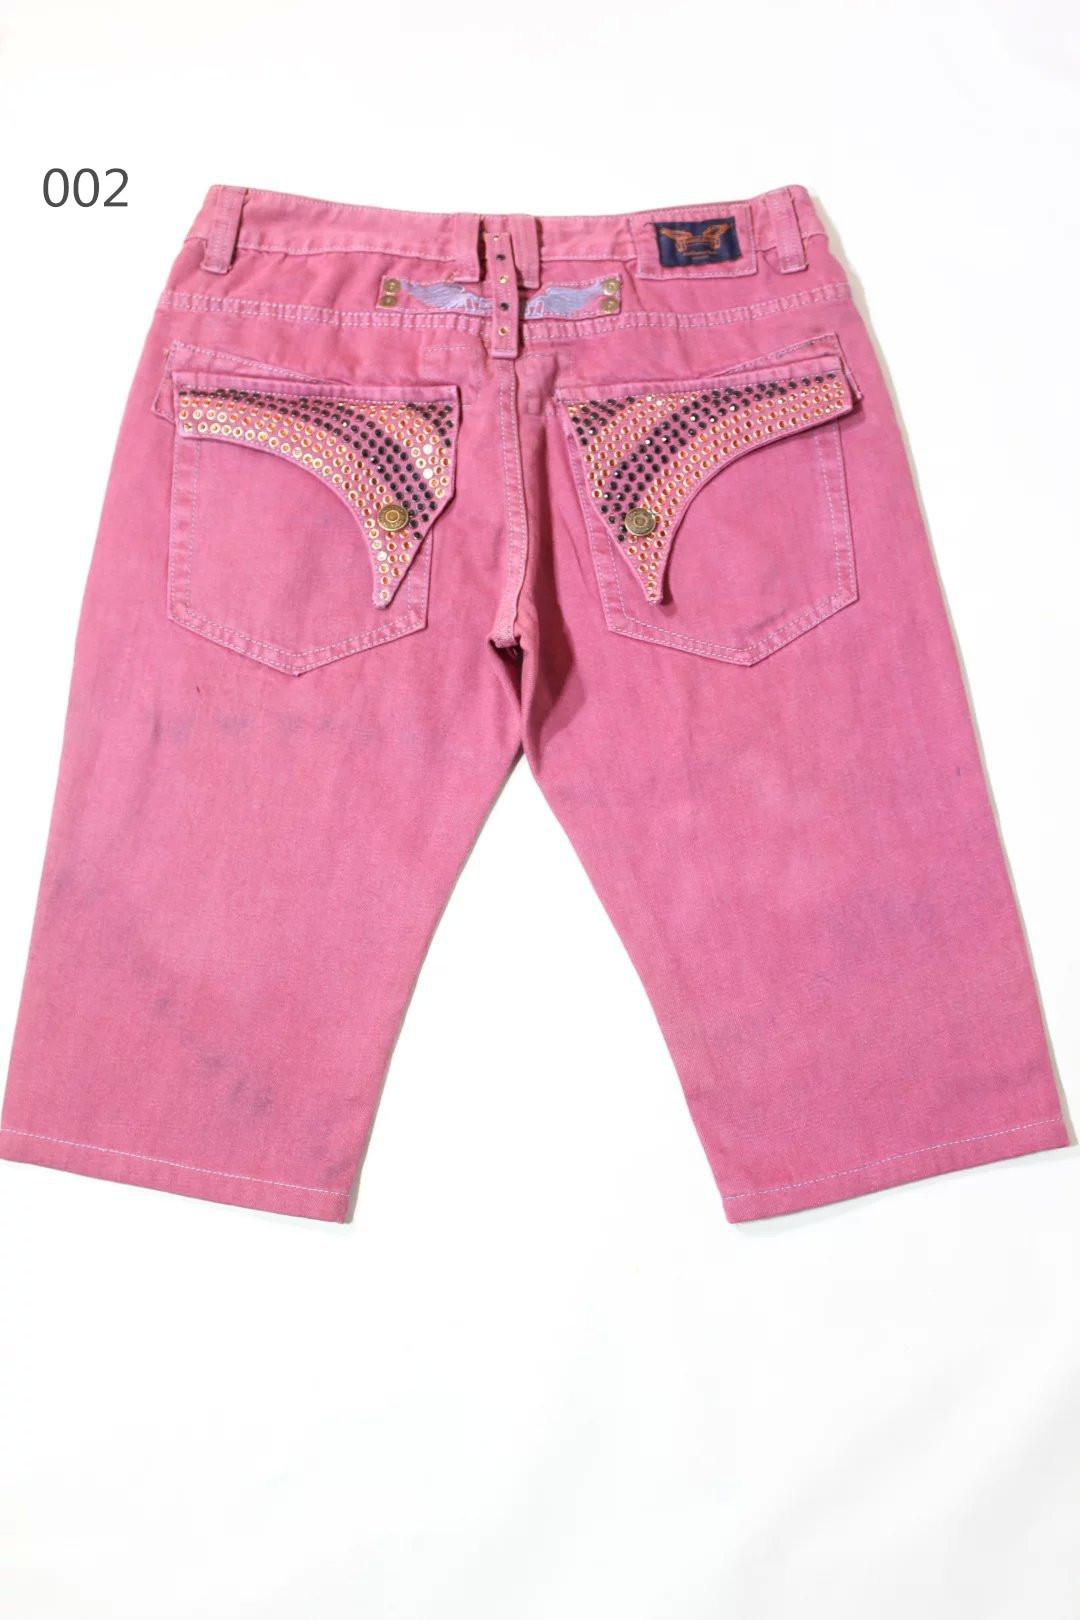 Rock Revival Jeans For Men Wholesale